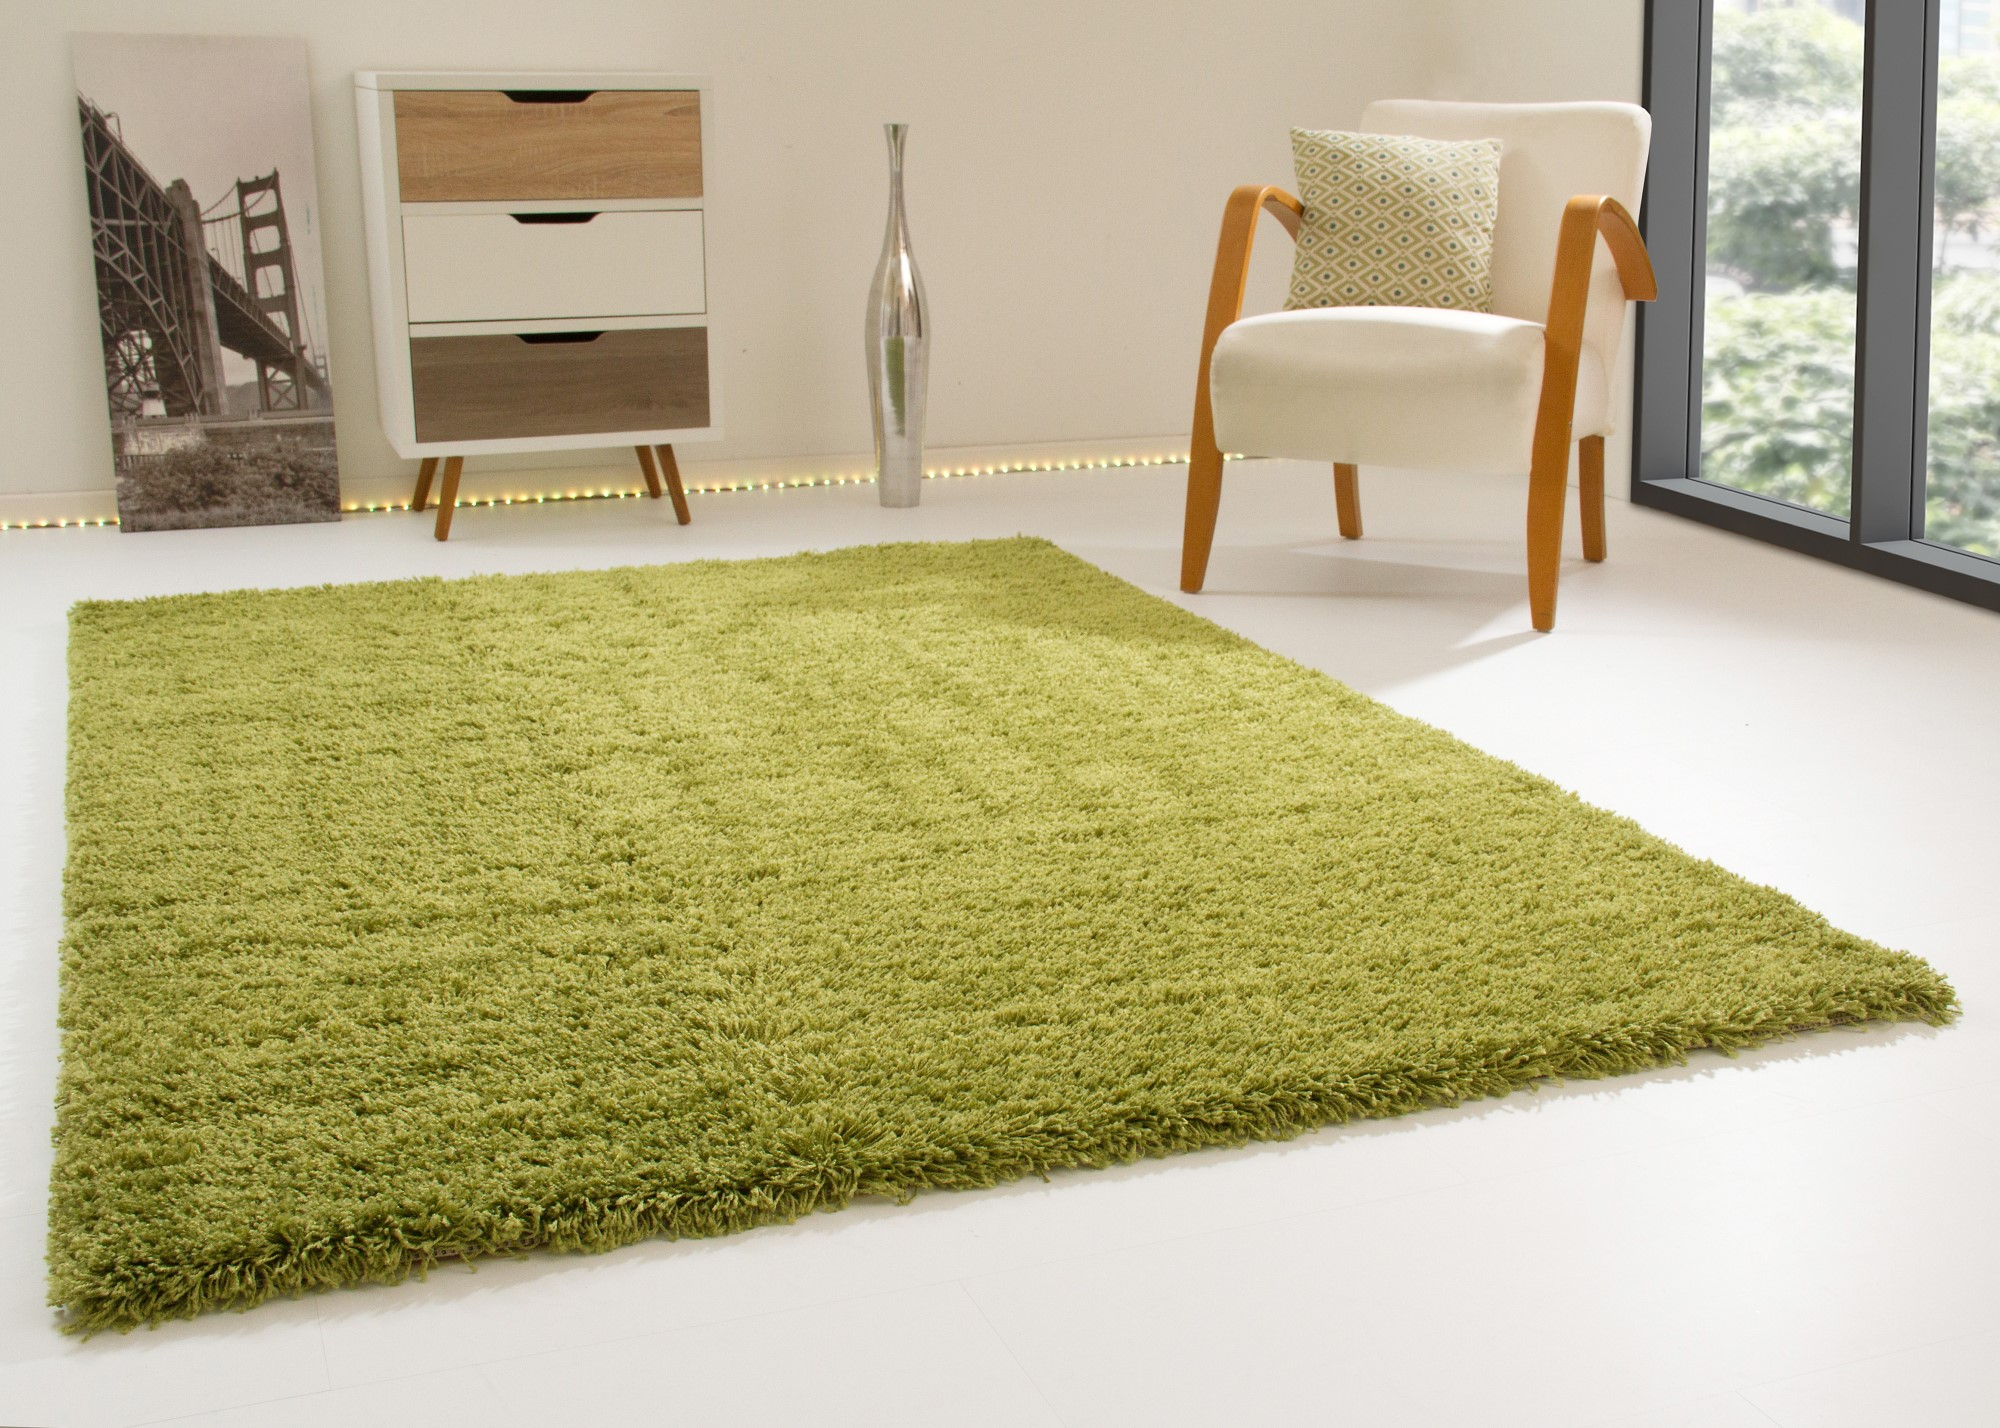 Shaggy Rug Happy Xl Thick Soft Pile Small Extra Large New